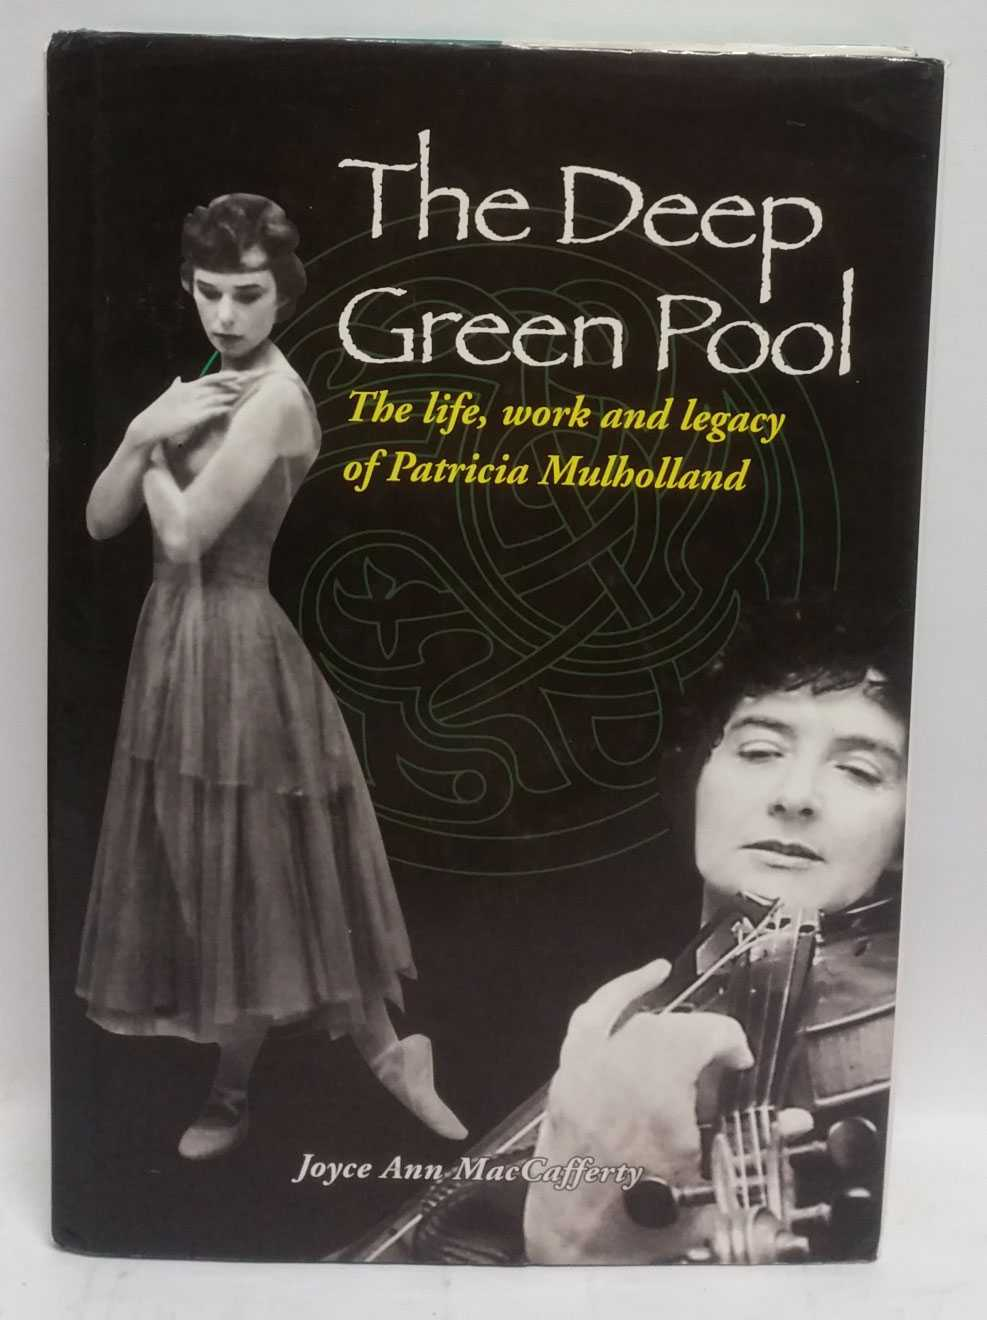 The Deep Green Pool: The life, work and legacy of Patricia Mulholland, Joyce Ann MacCafferty